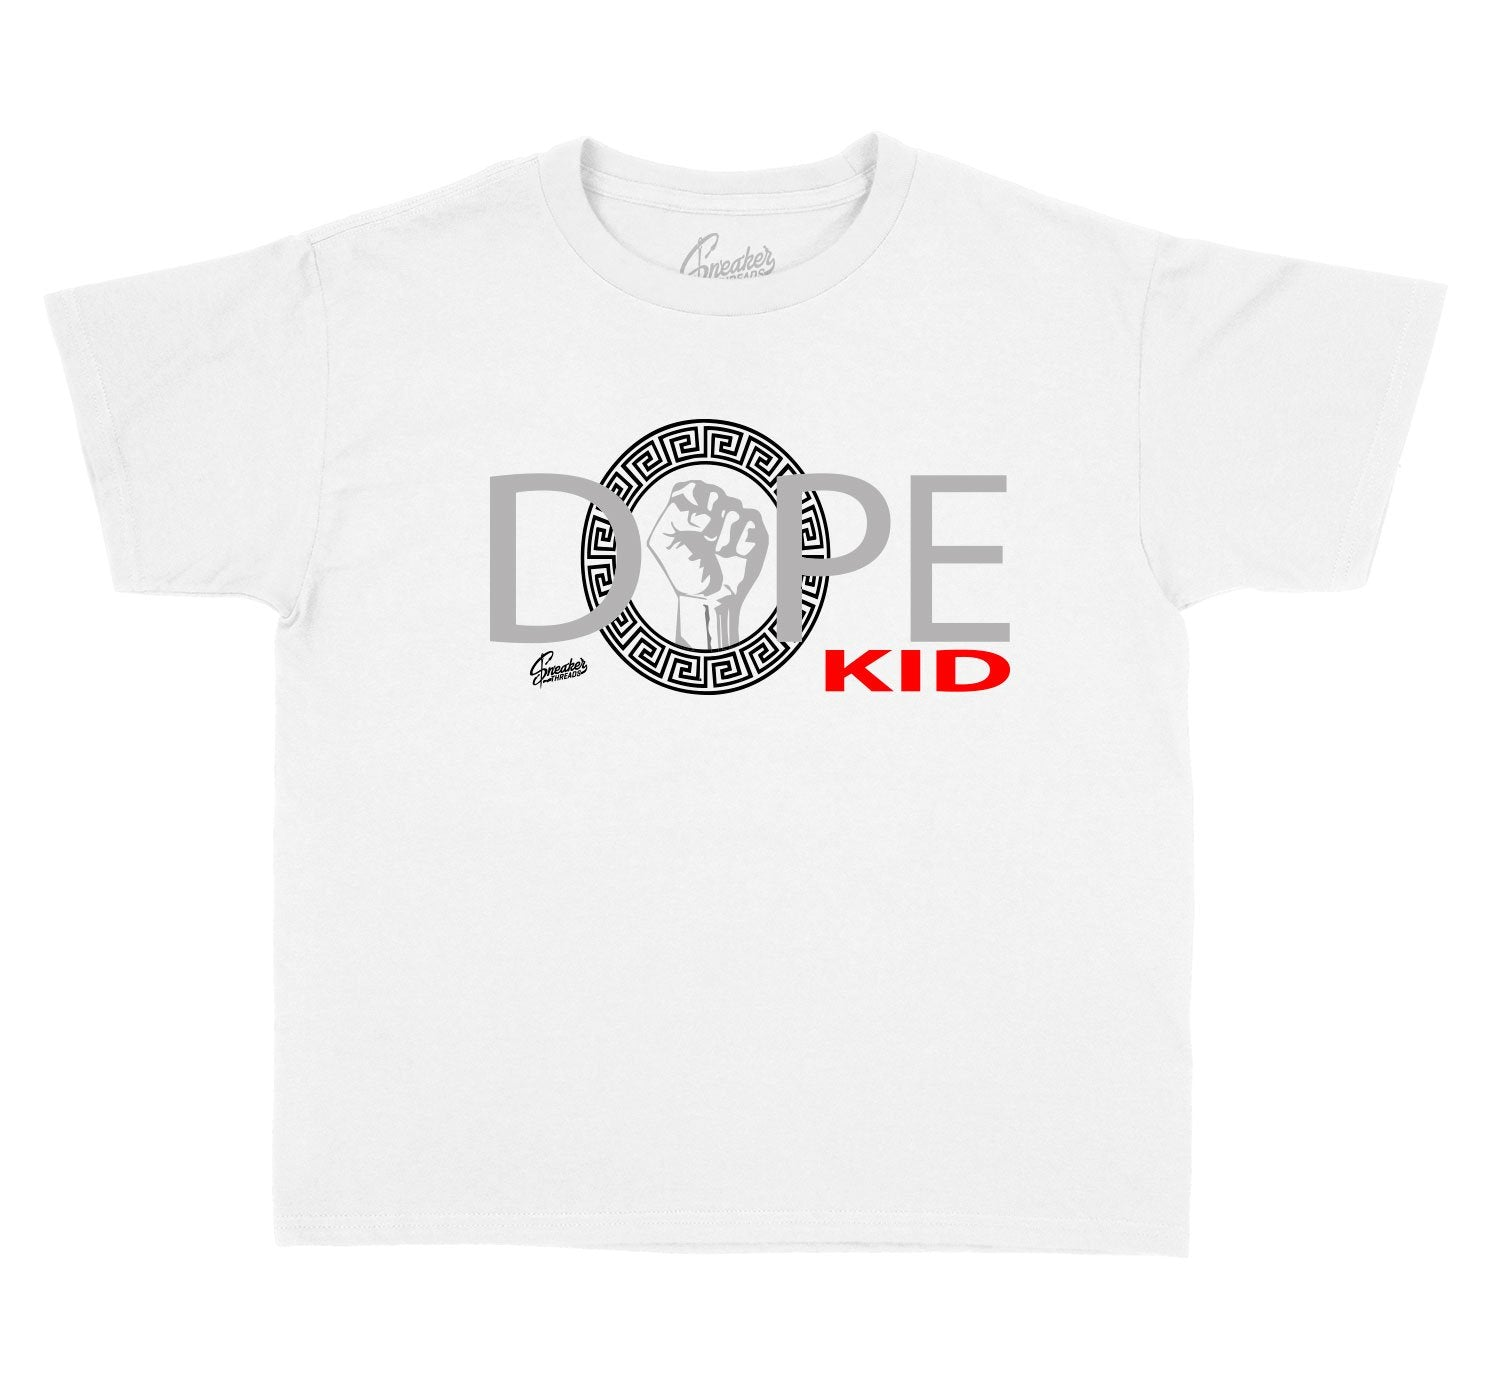 Dopest shirts for kids to match with Jordan 12 Dark grey release